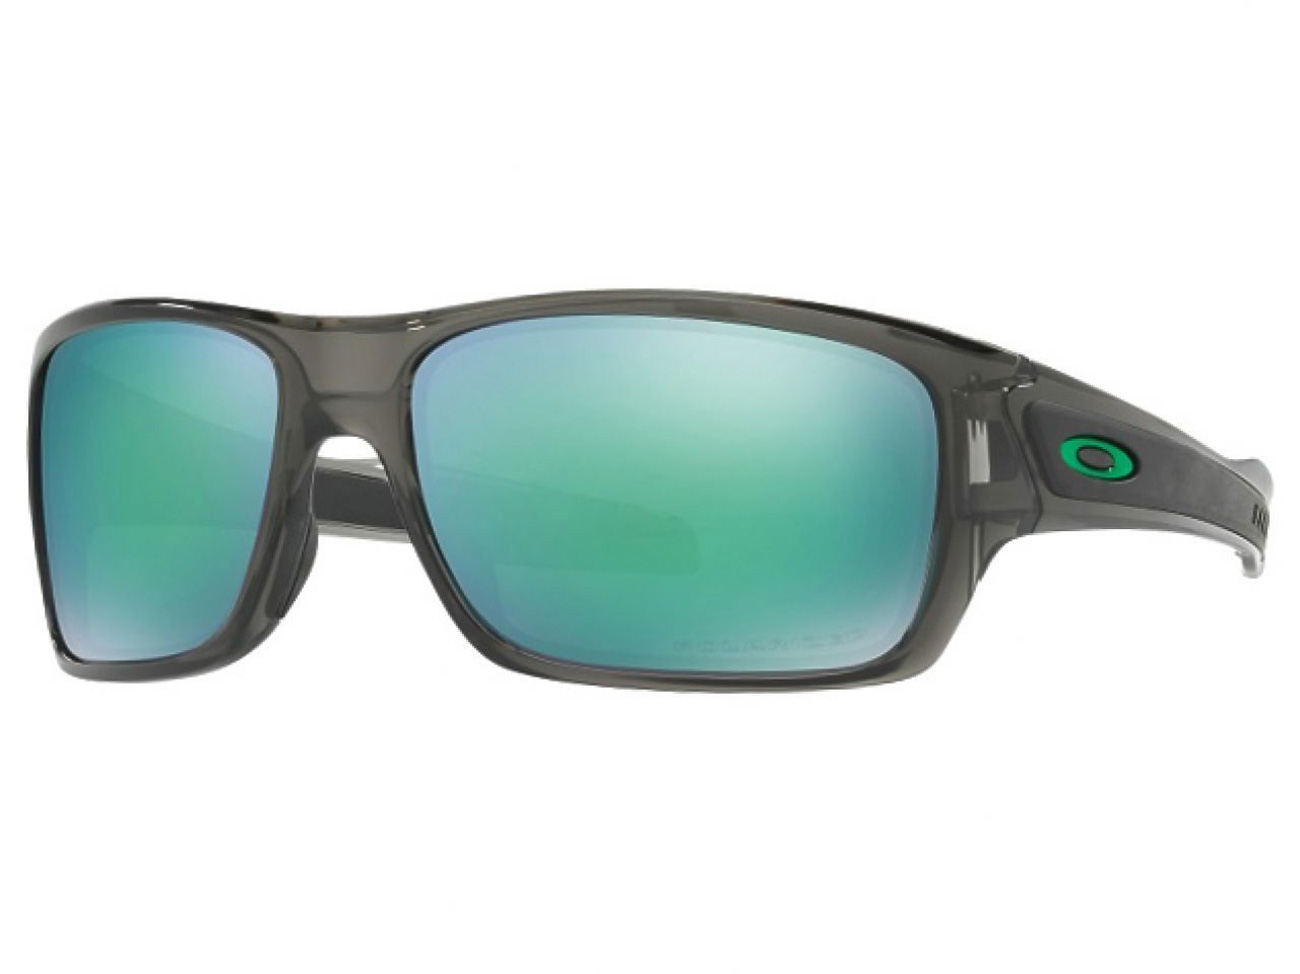 bb9d4141c3 Sentinel Oakley Sunglasses - Turbine - Grey Smoke